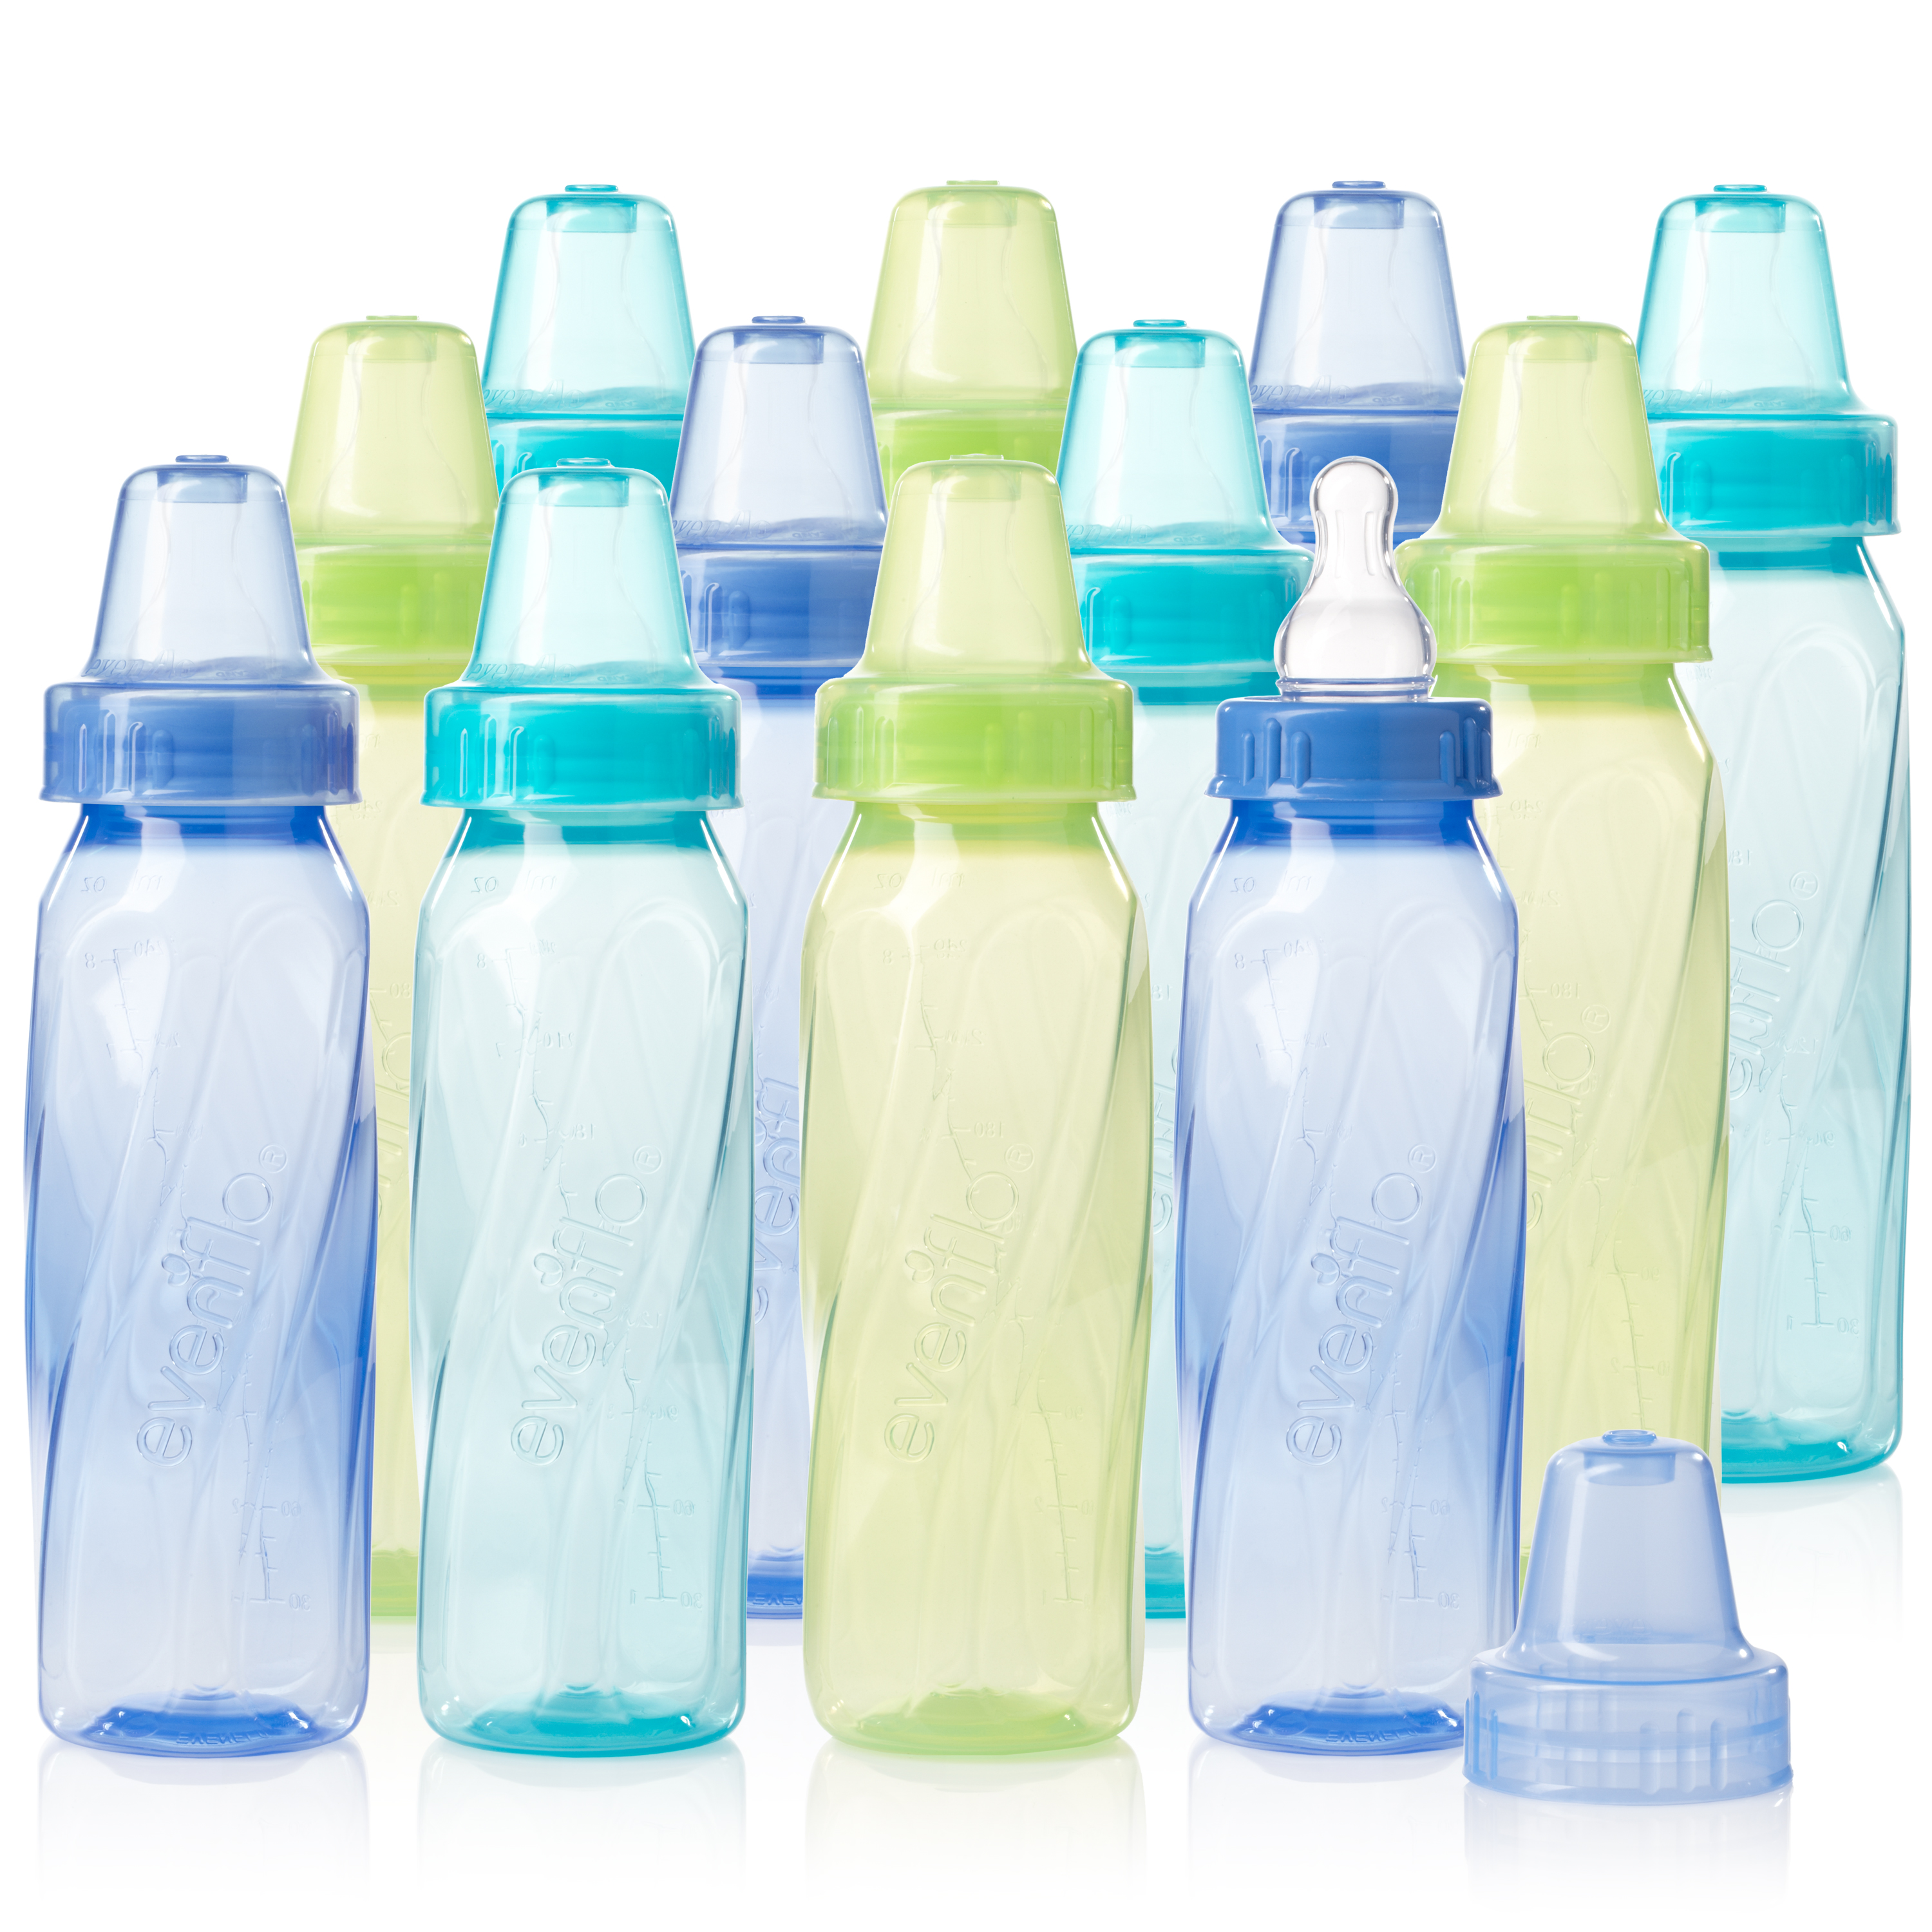 Evenflo Feeding Classic Tinted BPA-Free Plastic Baby Bottle - 8oz, Teal/Green/Blue, 12ct